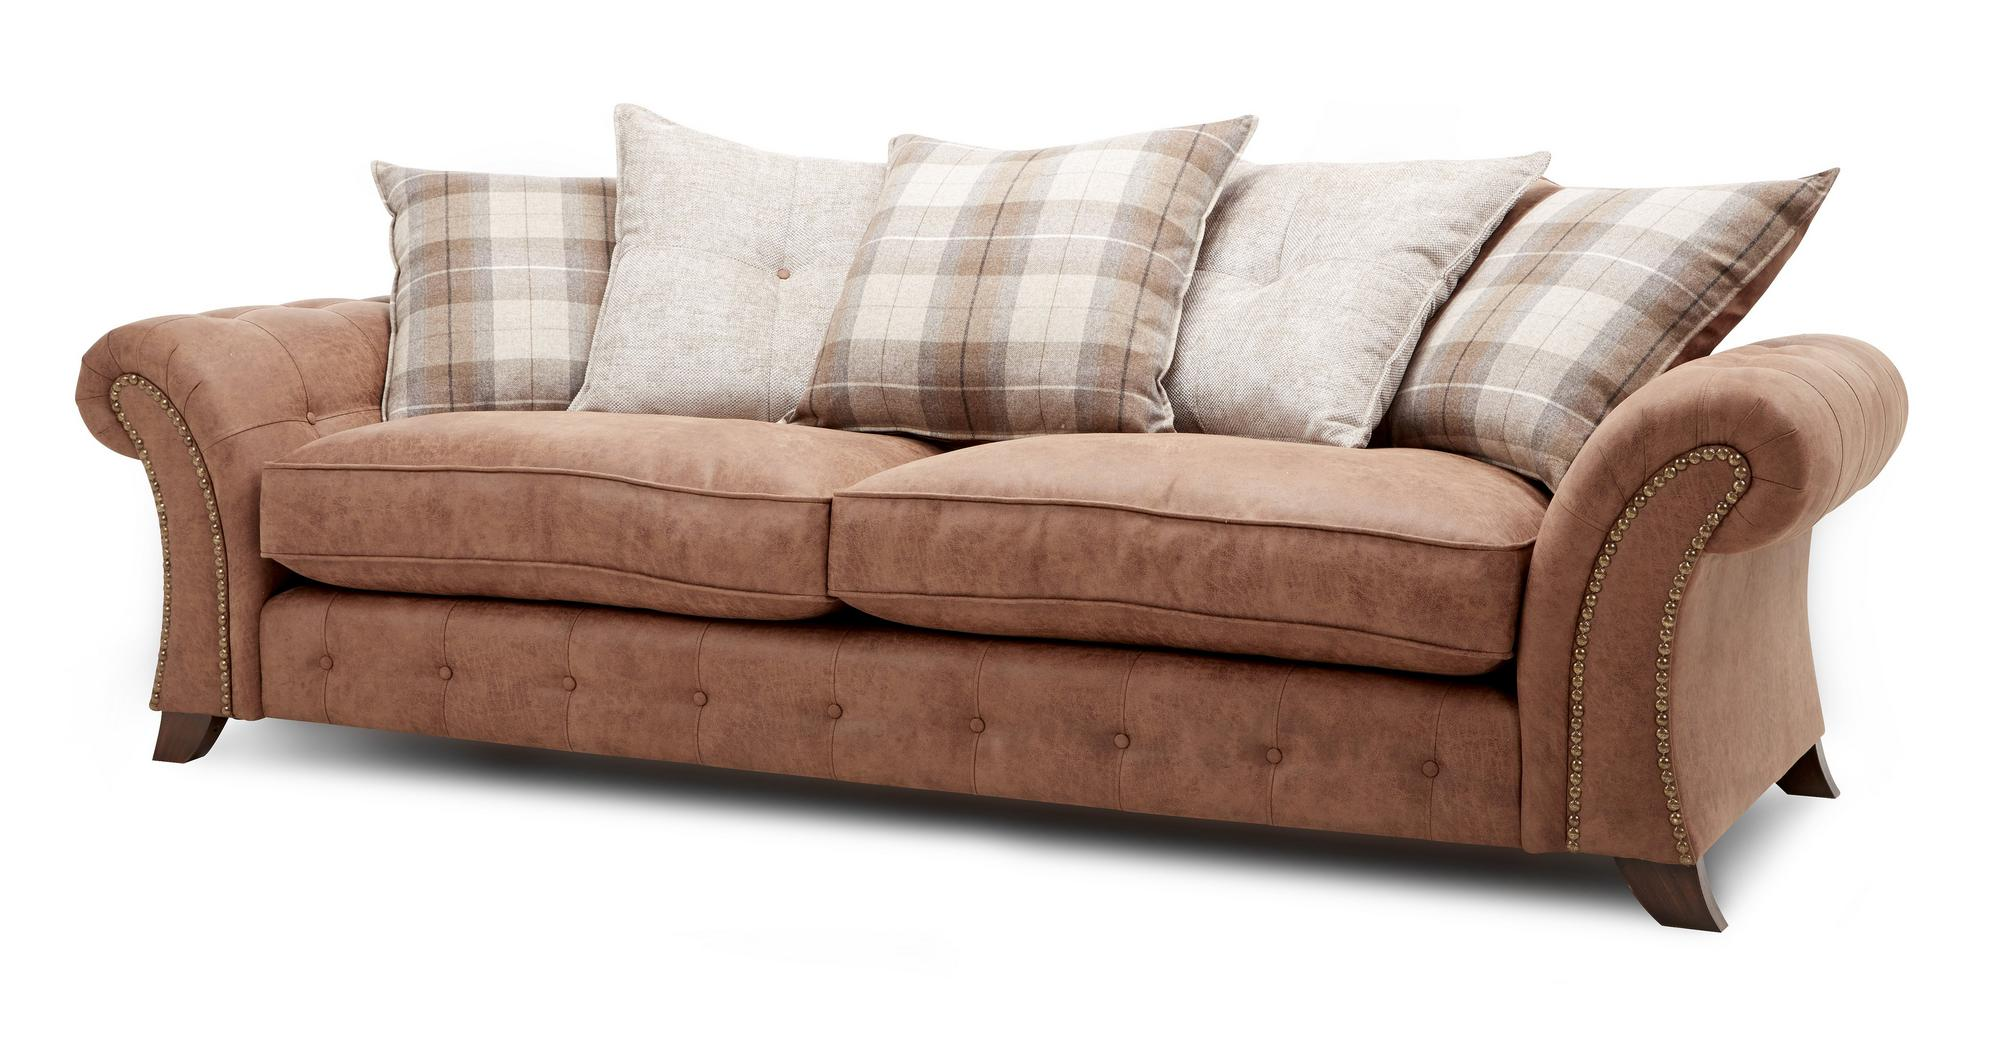 Dfs Woodland Brown Fabric 4 Seater Pillow Back Sofa